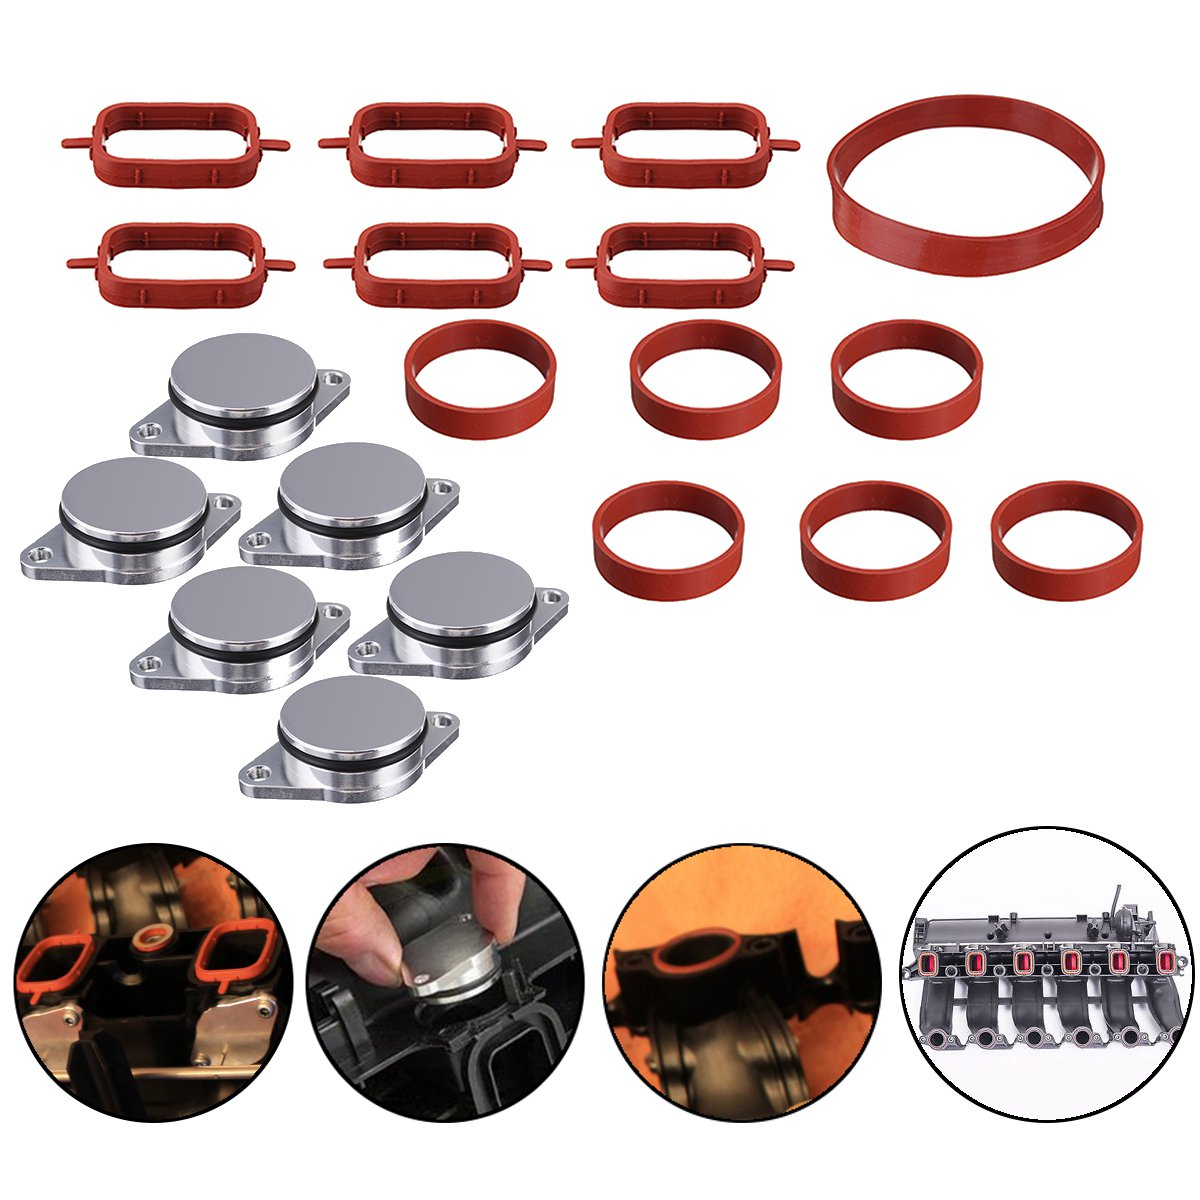 One Set 19PCS 32mm O-Ringen Aluminum Exhaust Pipe Repair Kit with Gaskets For BMW E46 E53 E60 E61 E63 E66 1998- 2013 11612246945